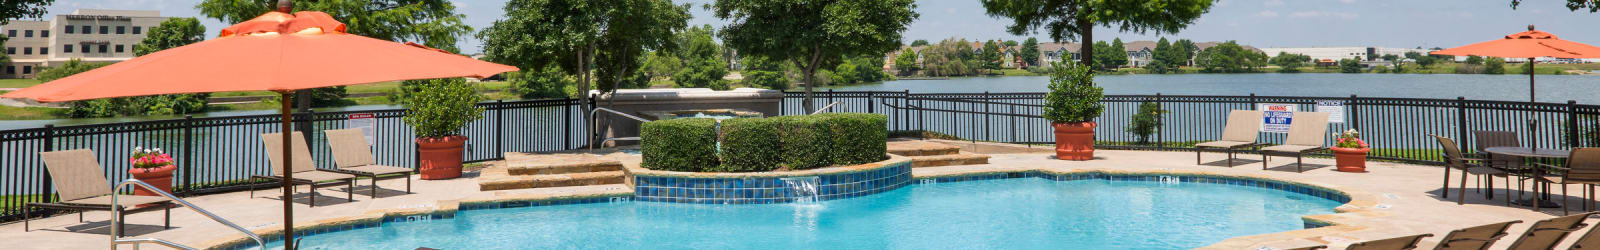 Floor plans at Crescent Cove at Lakepointe in Lewisville, Texas